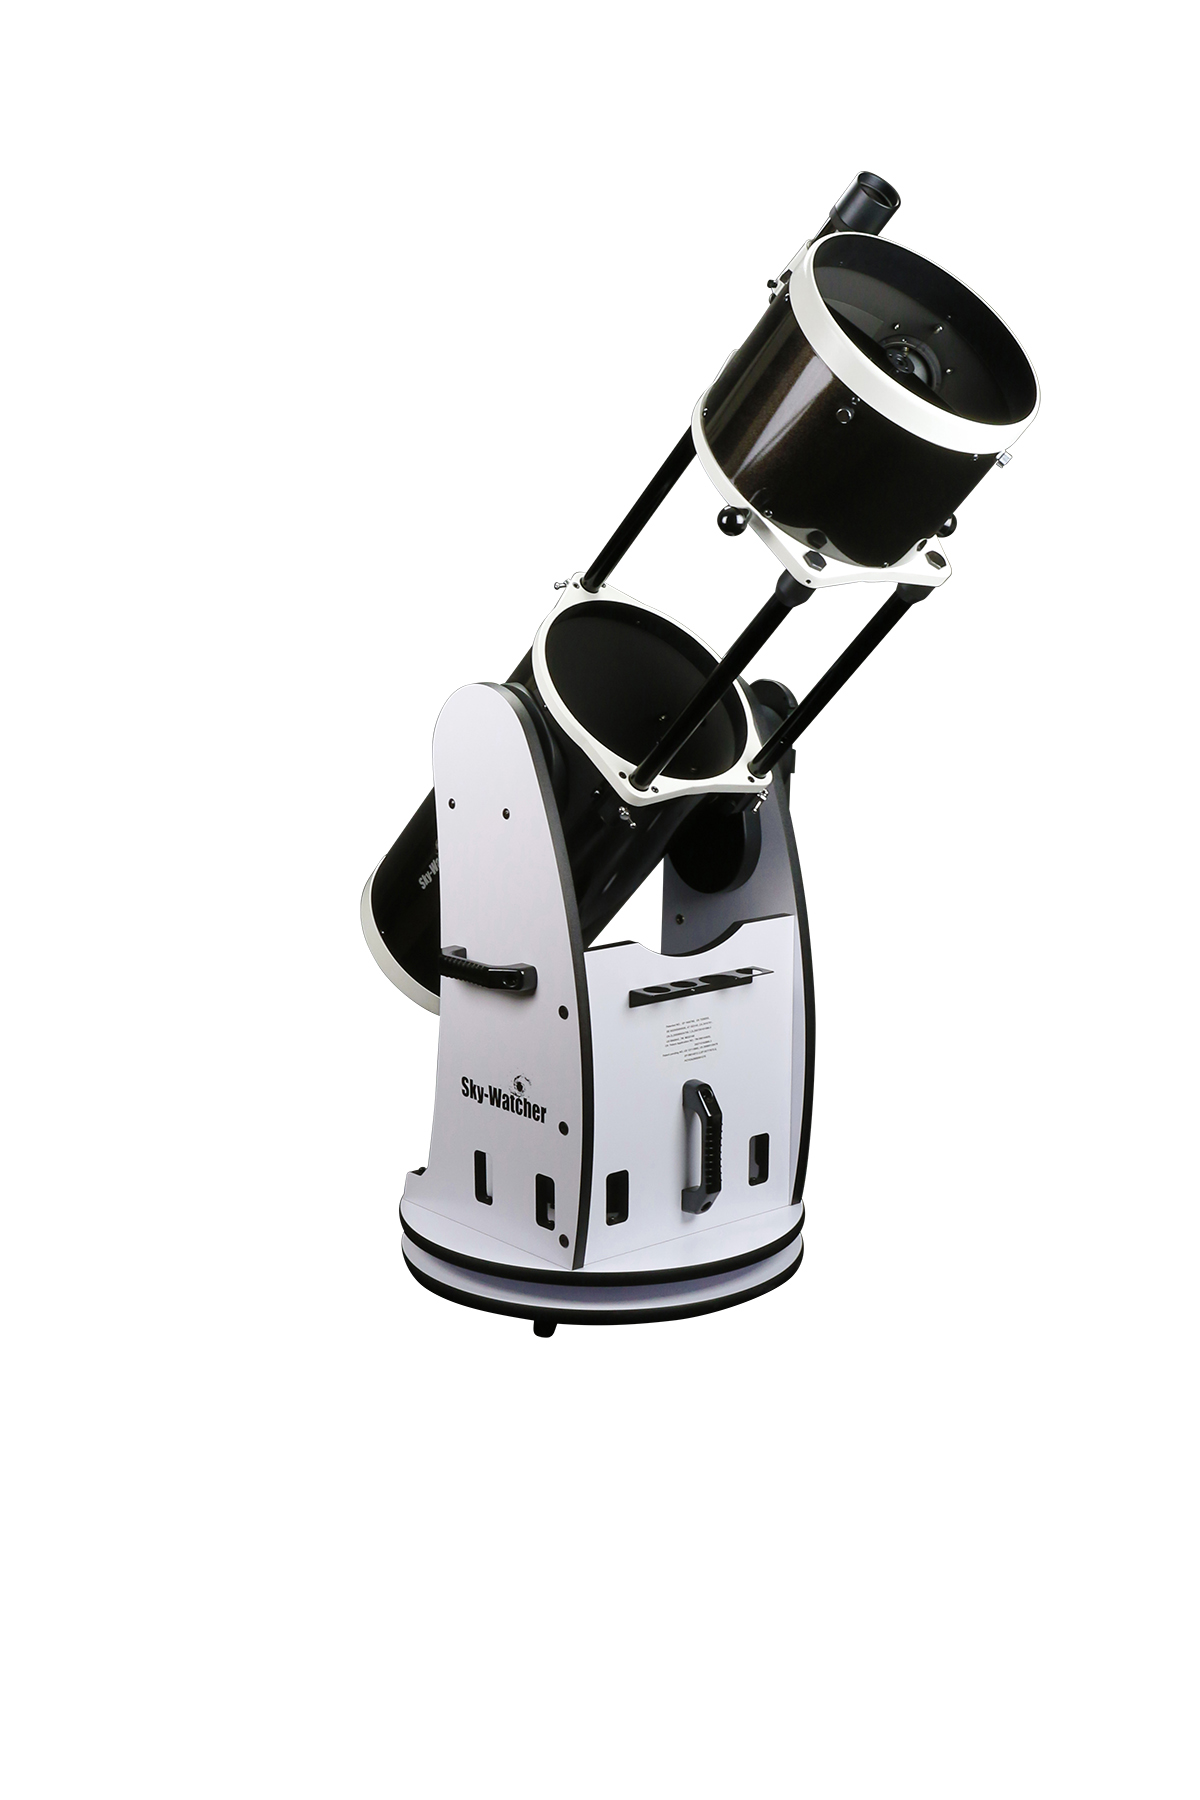 Sky Watcher 10in  Flextube 250P SynScan GoTo Collapsible Dobsonian  Telescope S11810